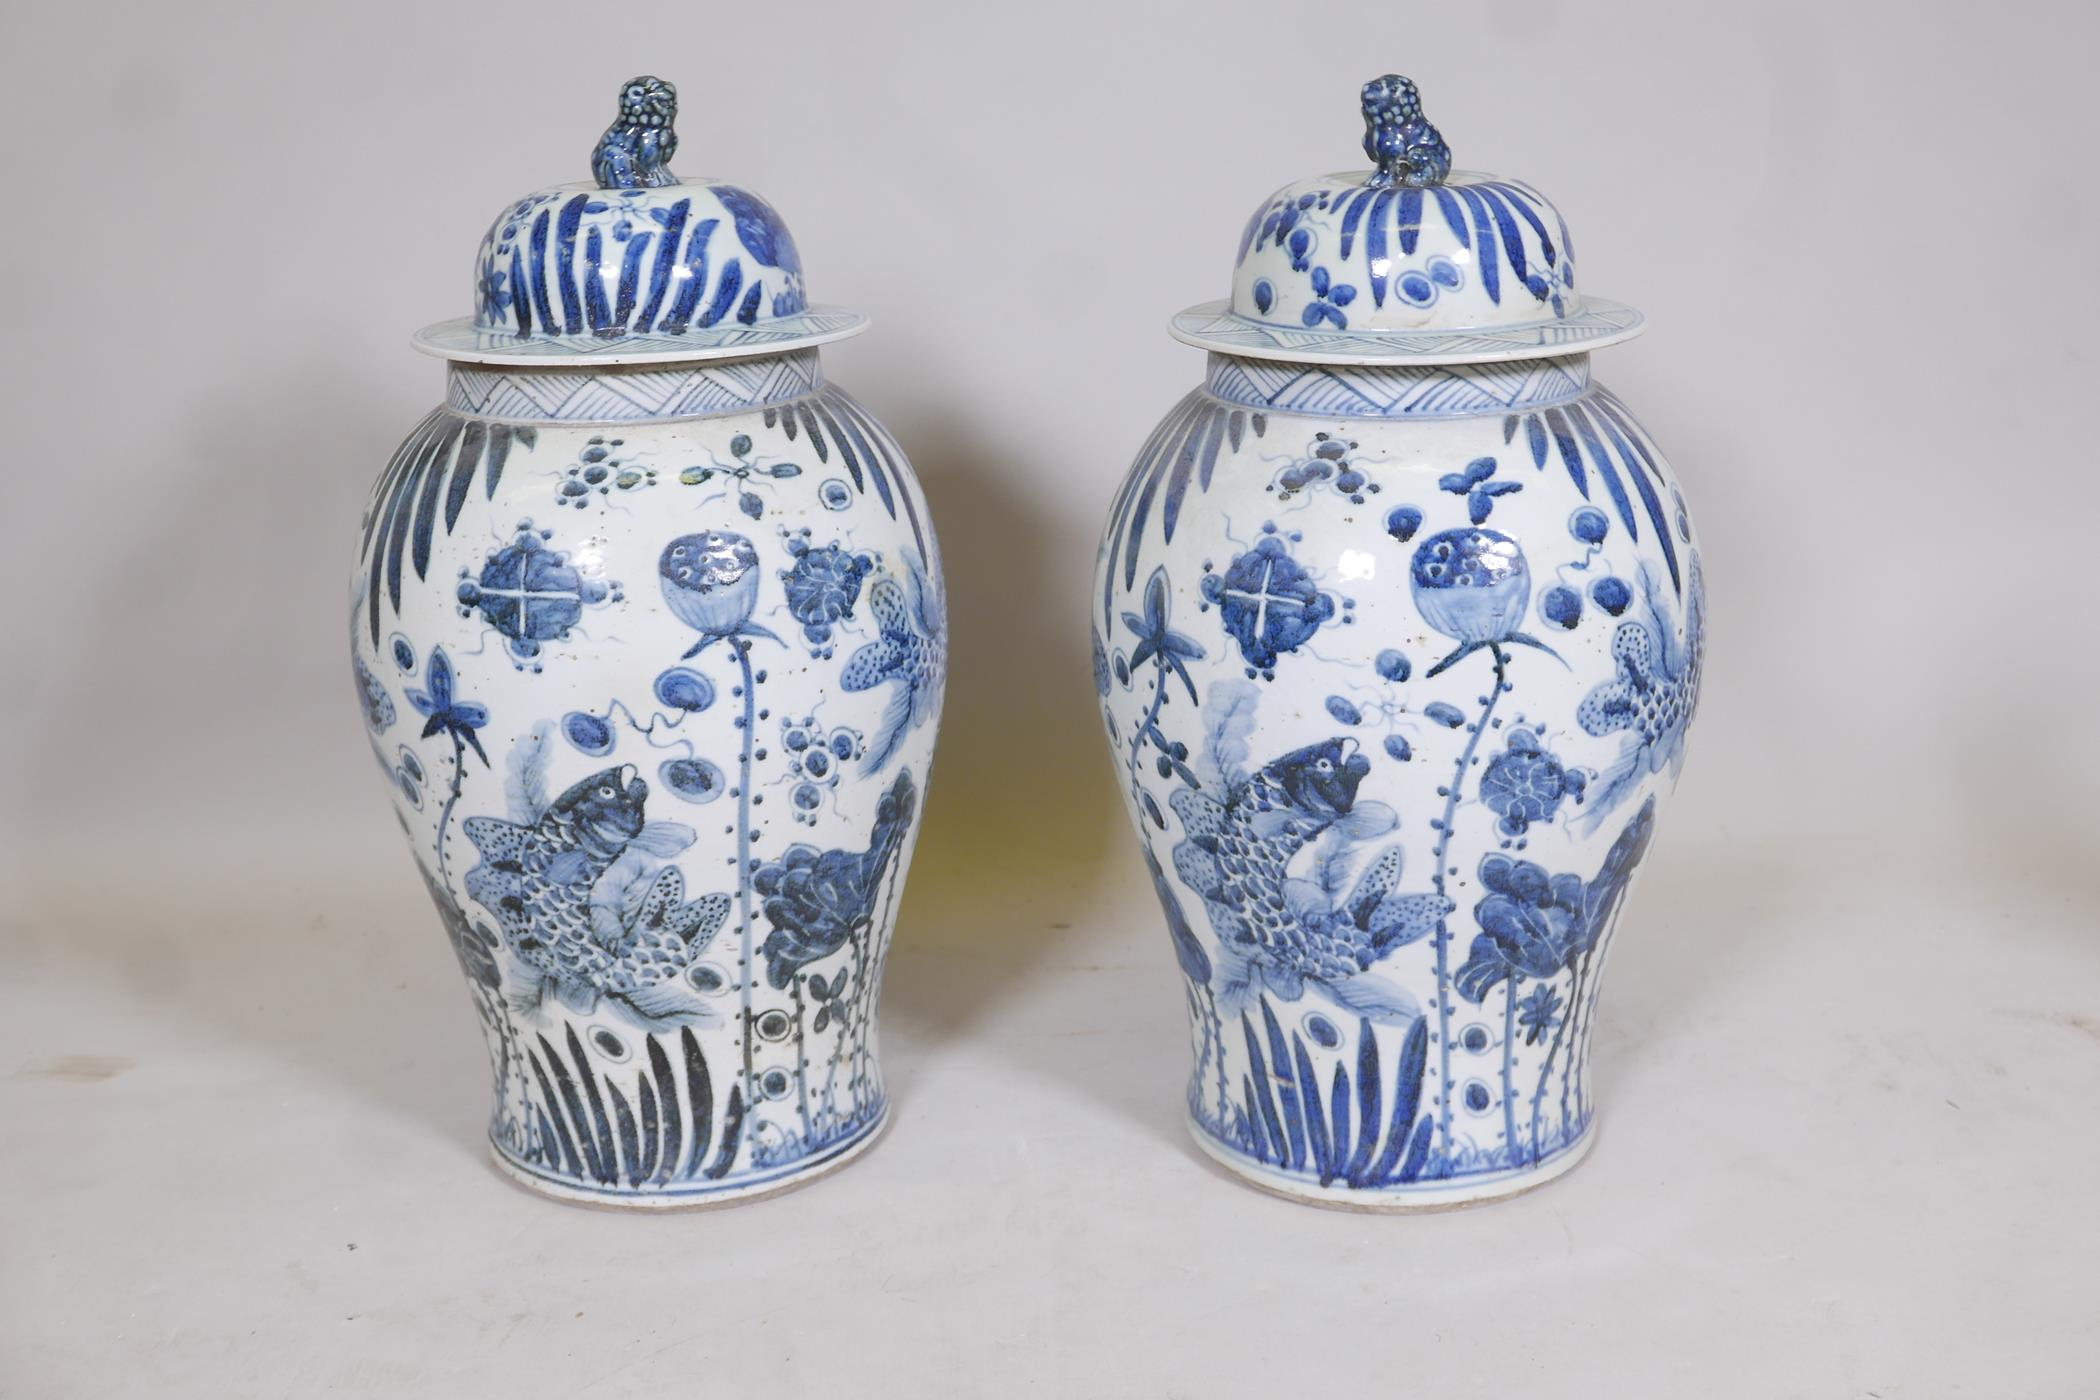 A pair of Chinese blue and white porcelain meiping jar and covers decorated with carp in a lotus